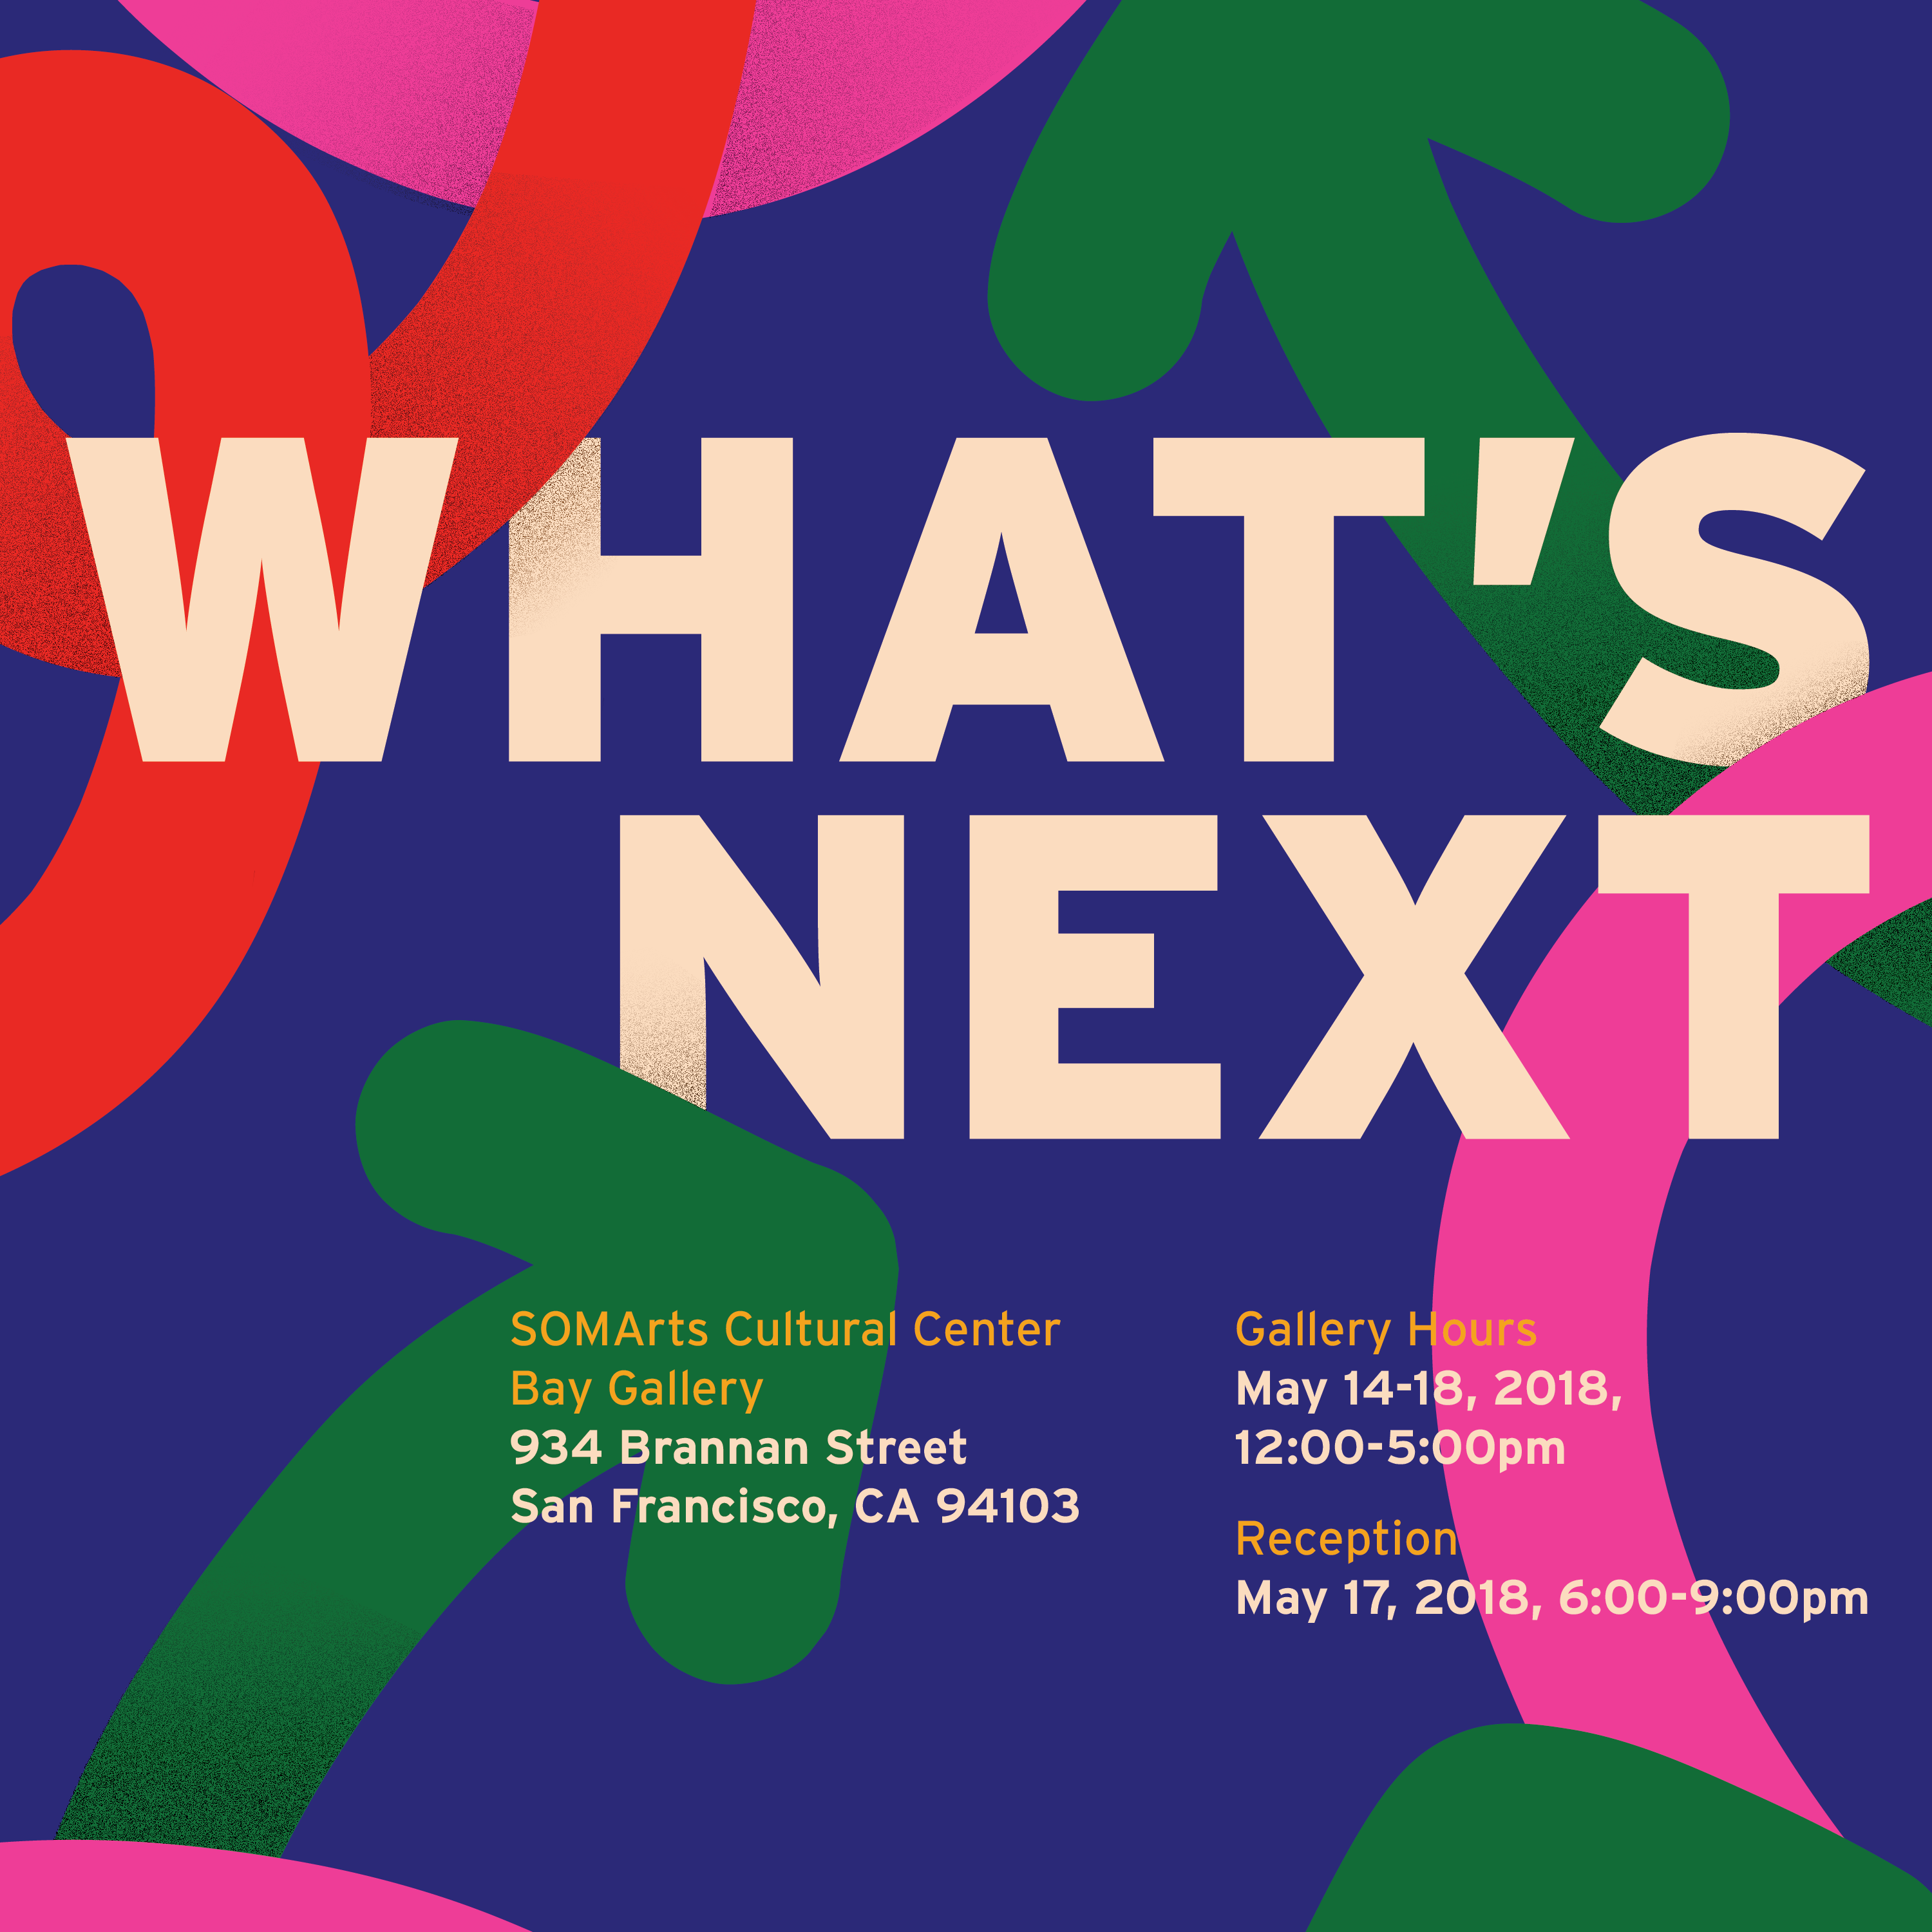 What's Next Reception Promotional Material Designed with colorful arrows by Students